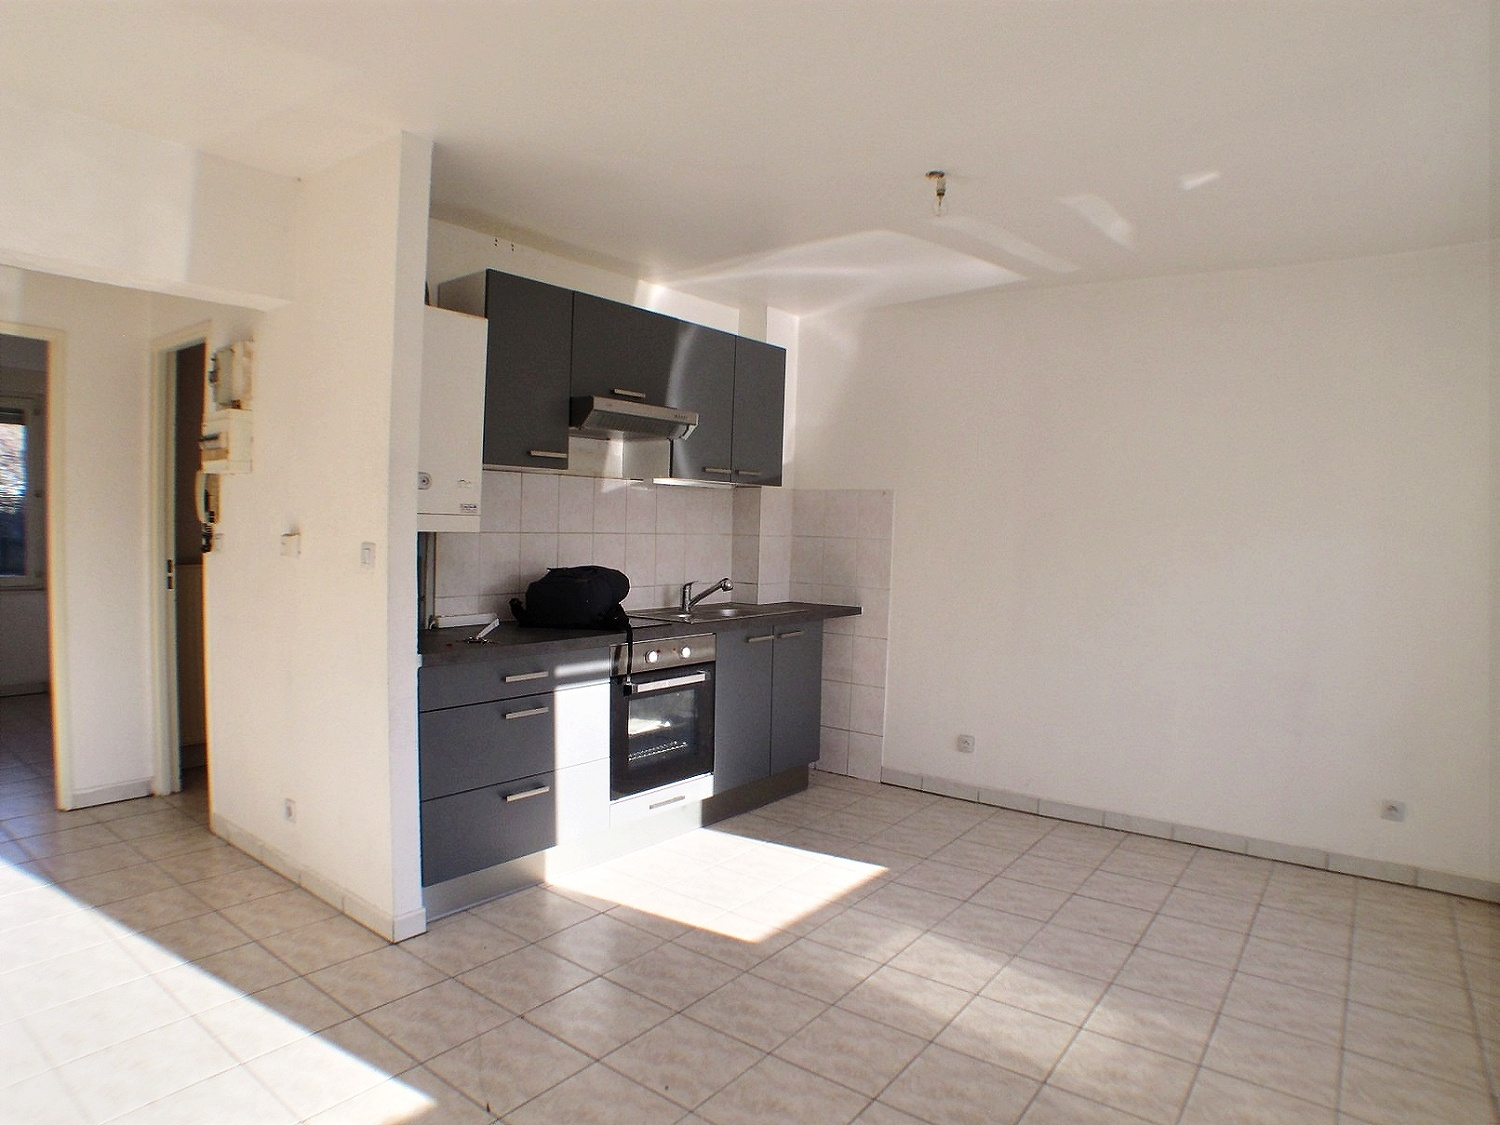 Mulhouse Canal, Immeuble 4 appartements